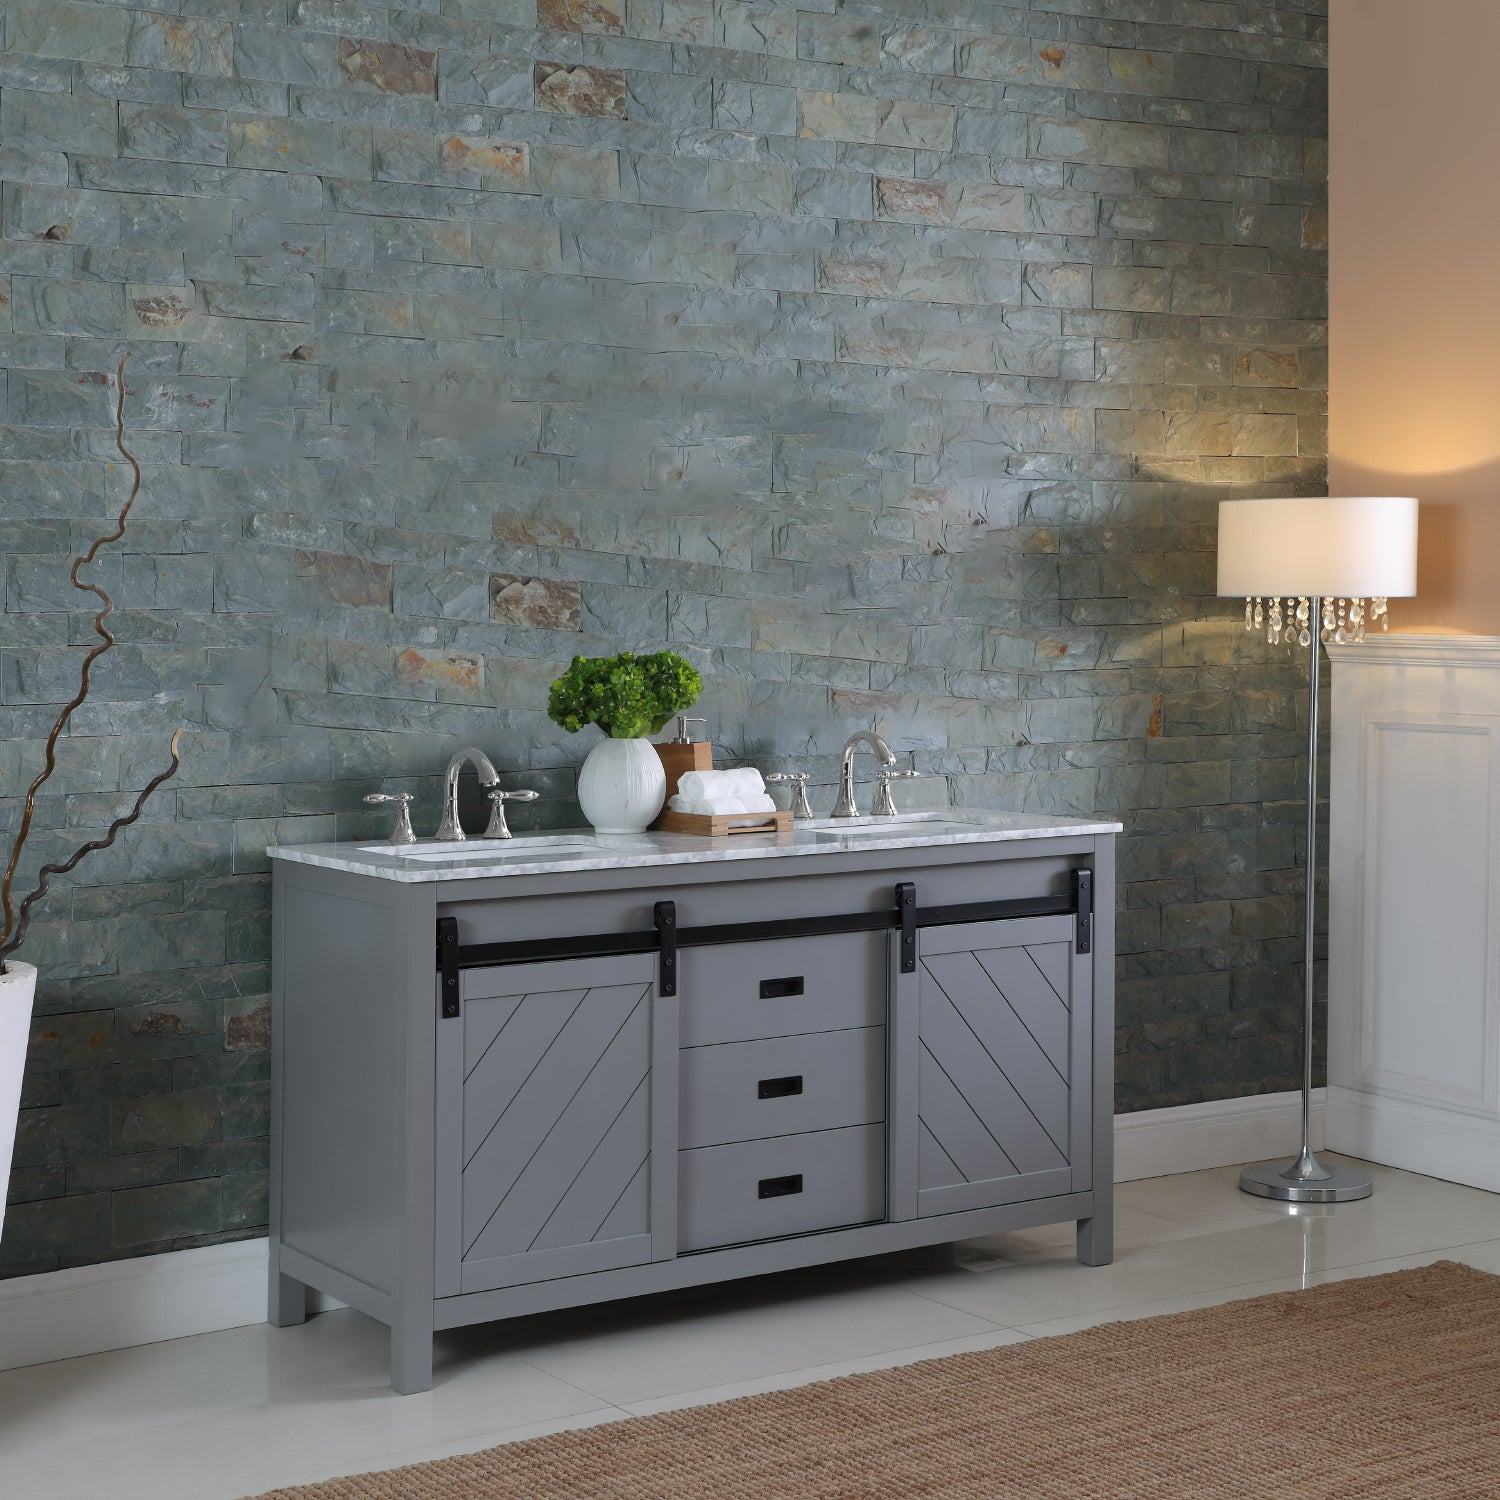 "Kinsley 60"" Double Bathroom Vanity Set in Gray and Carrara White Marble Countertop without Mirror"